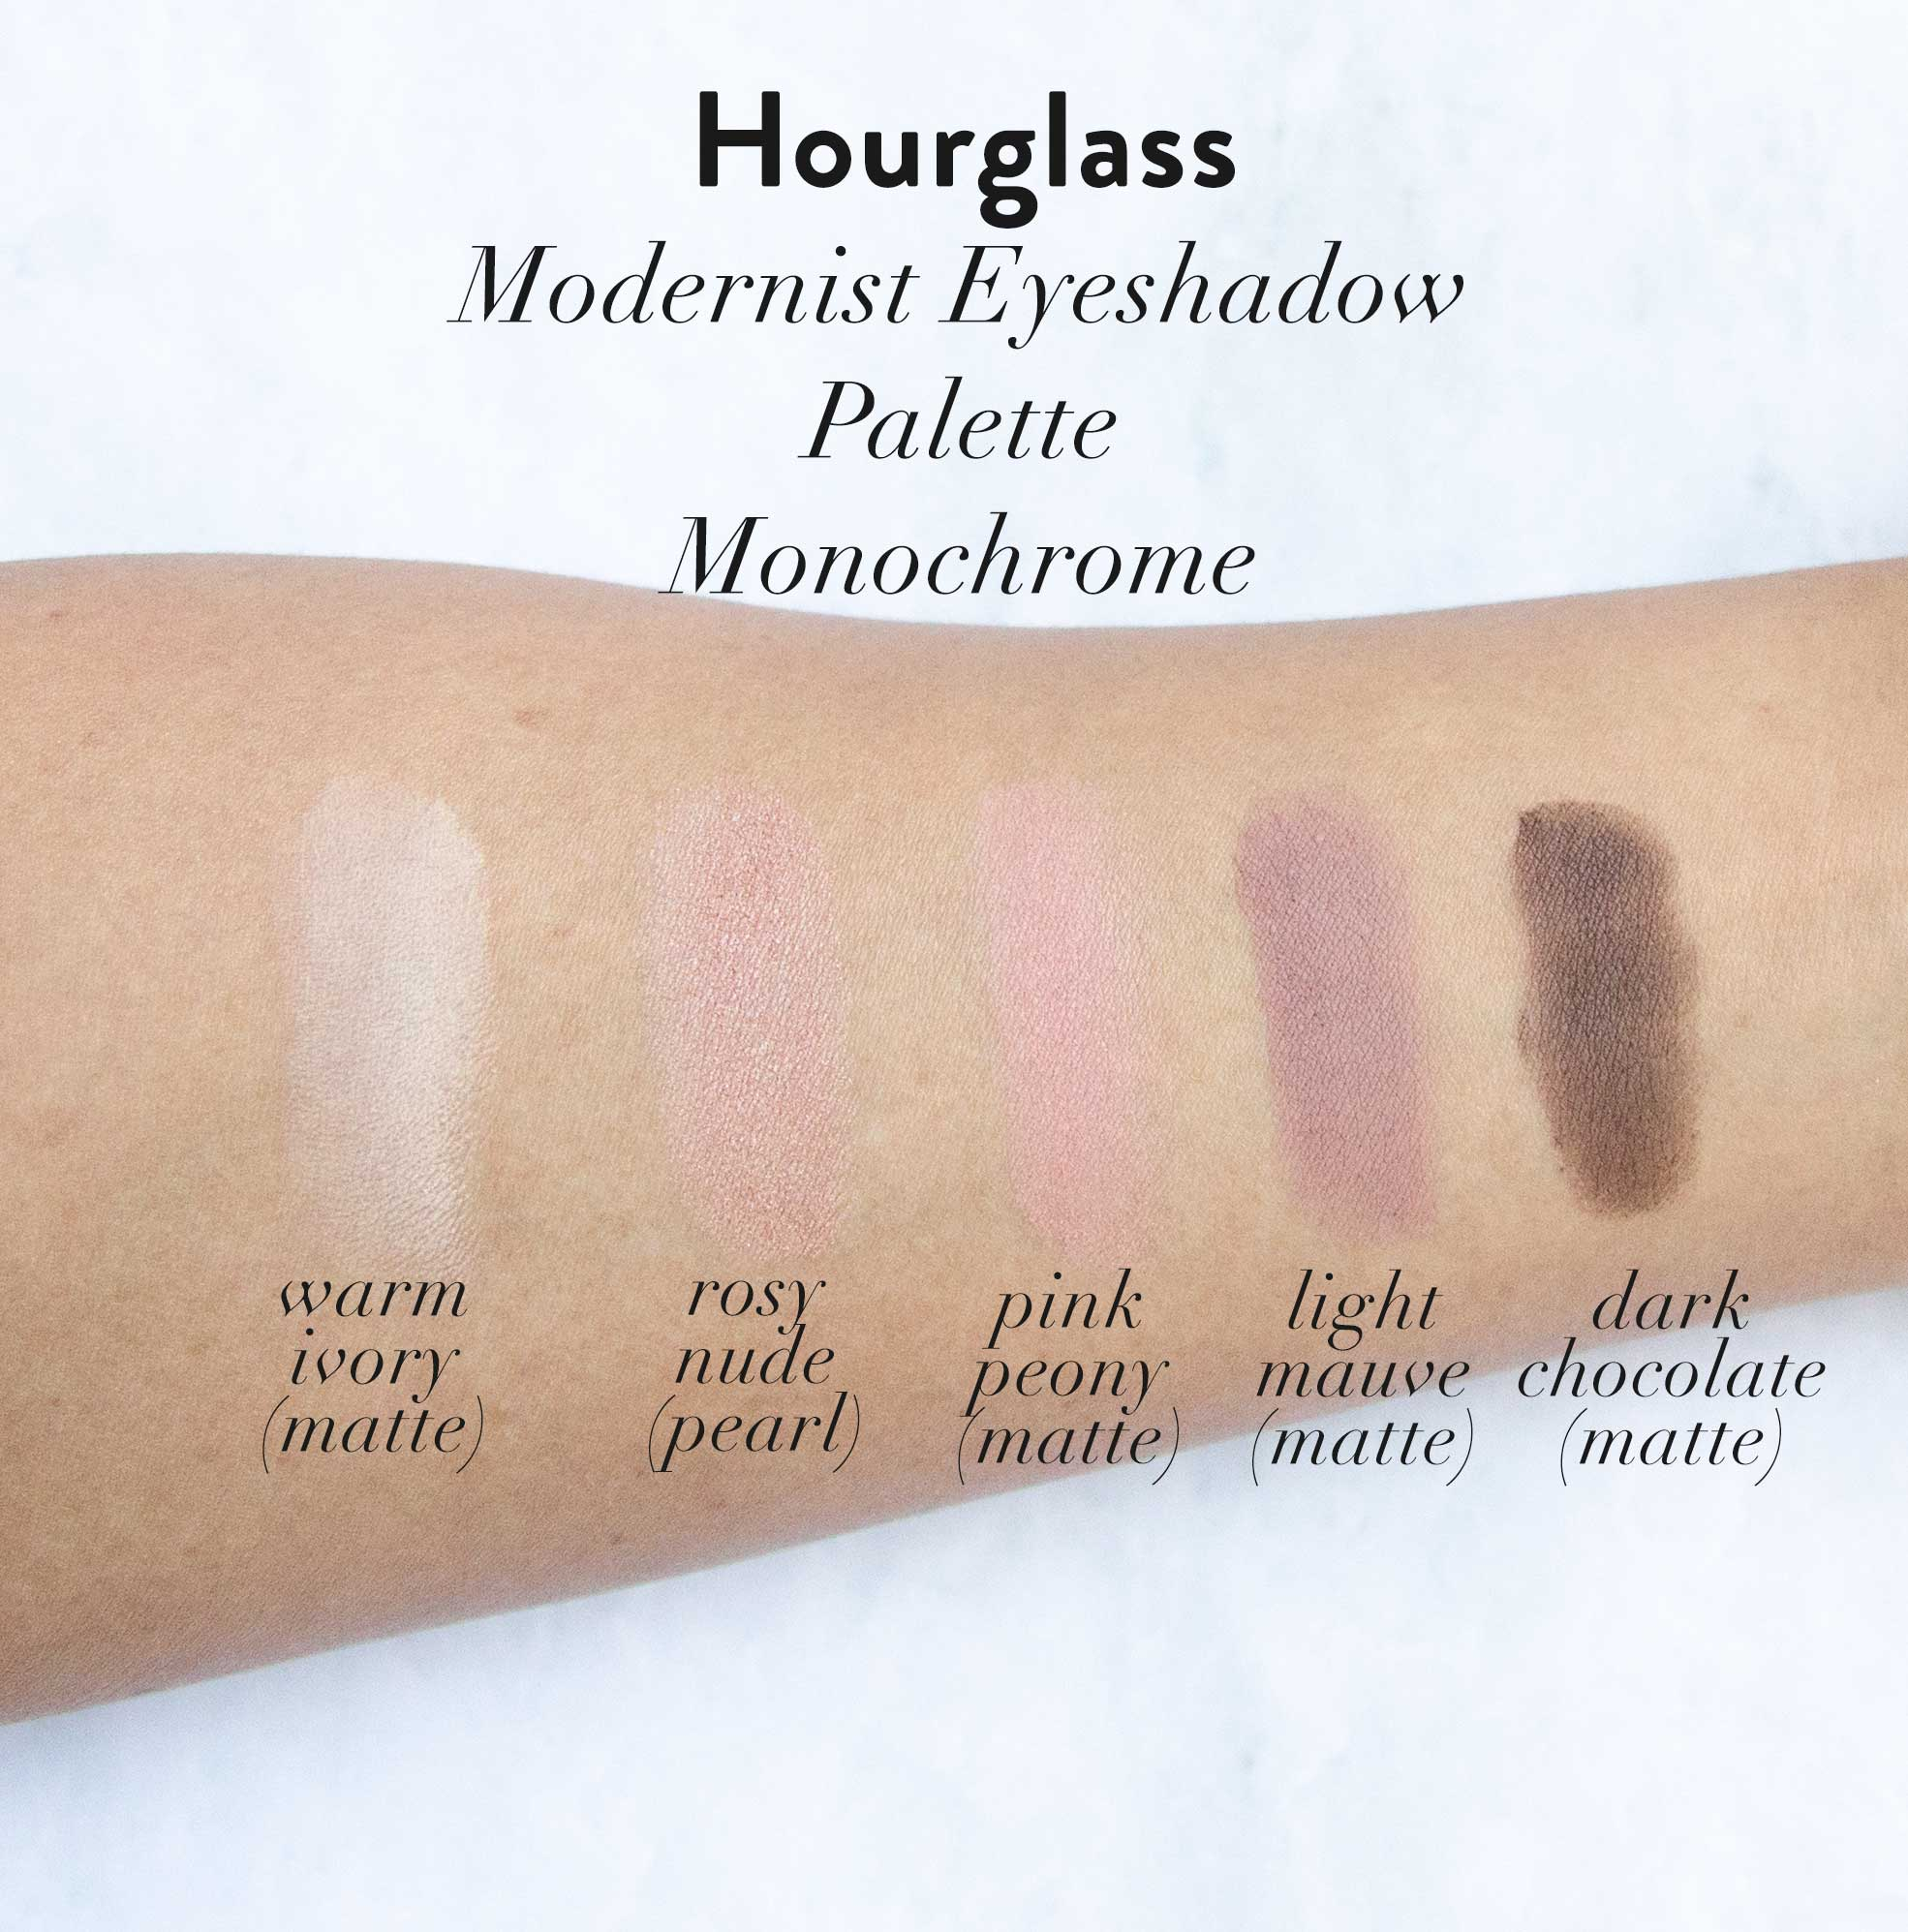 hourglass modernist eyeshadow monochrome review swatches